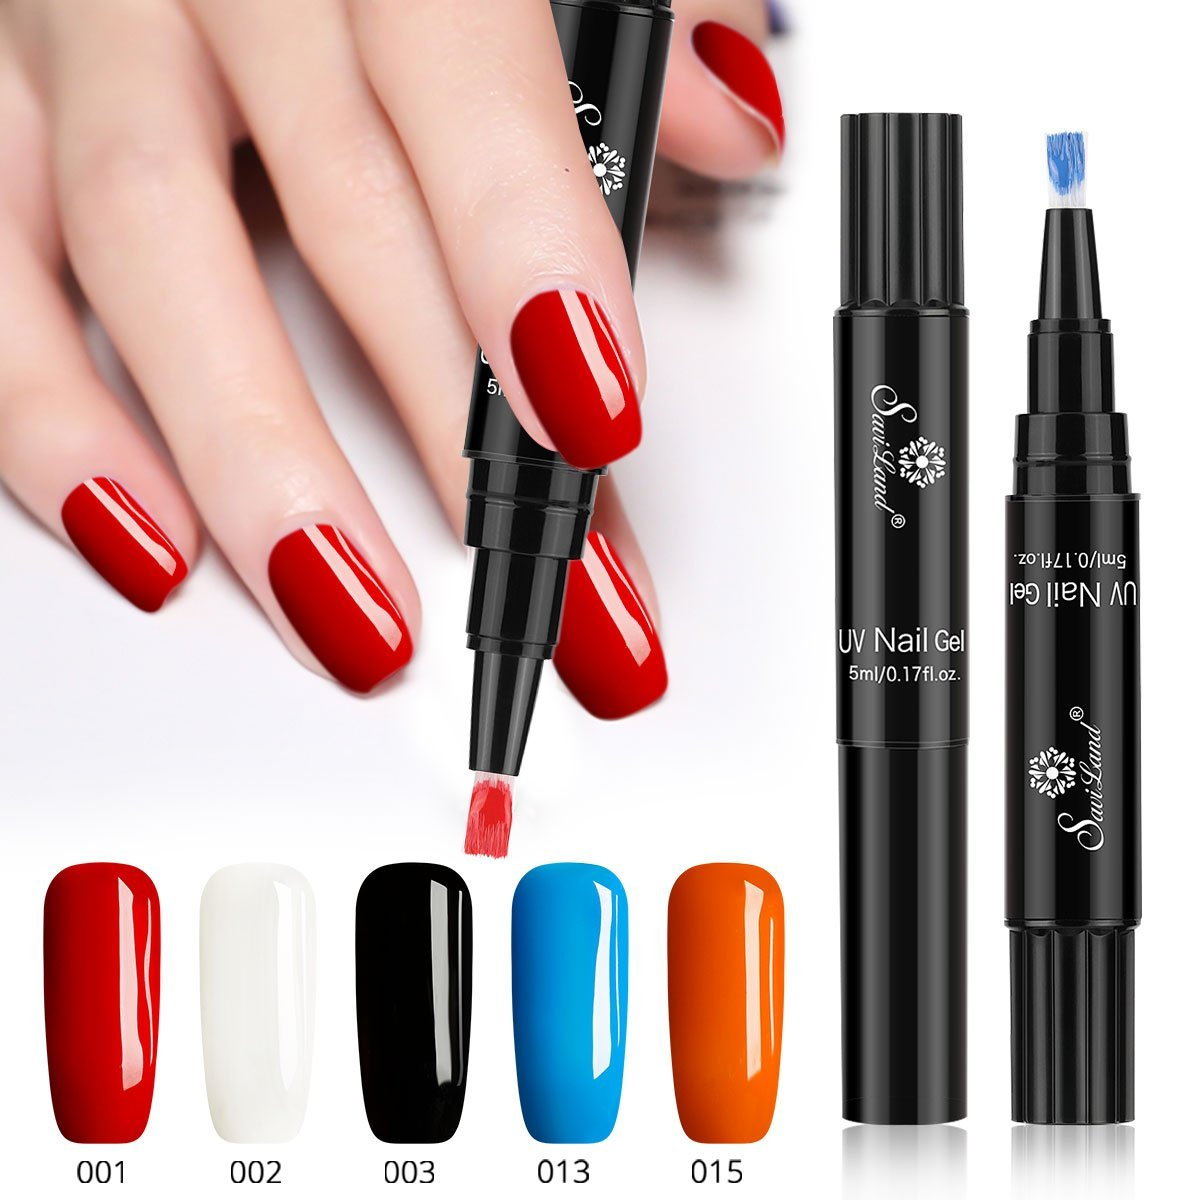 One Step Gel Nail Polish Pen, No Base Top Coat Need, Saviland 3 in 1 Soak Off UV LED Nail Varnish Nail Art Kit (Red series)